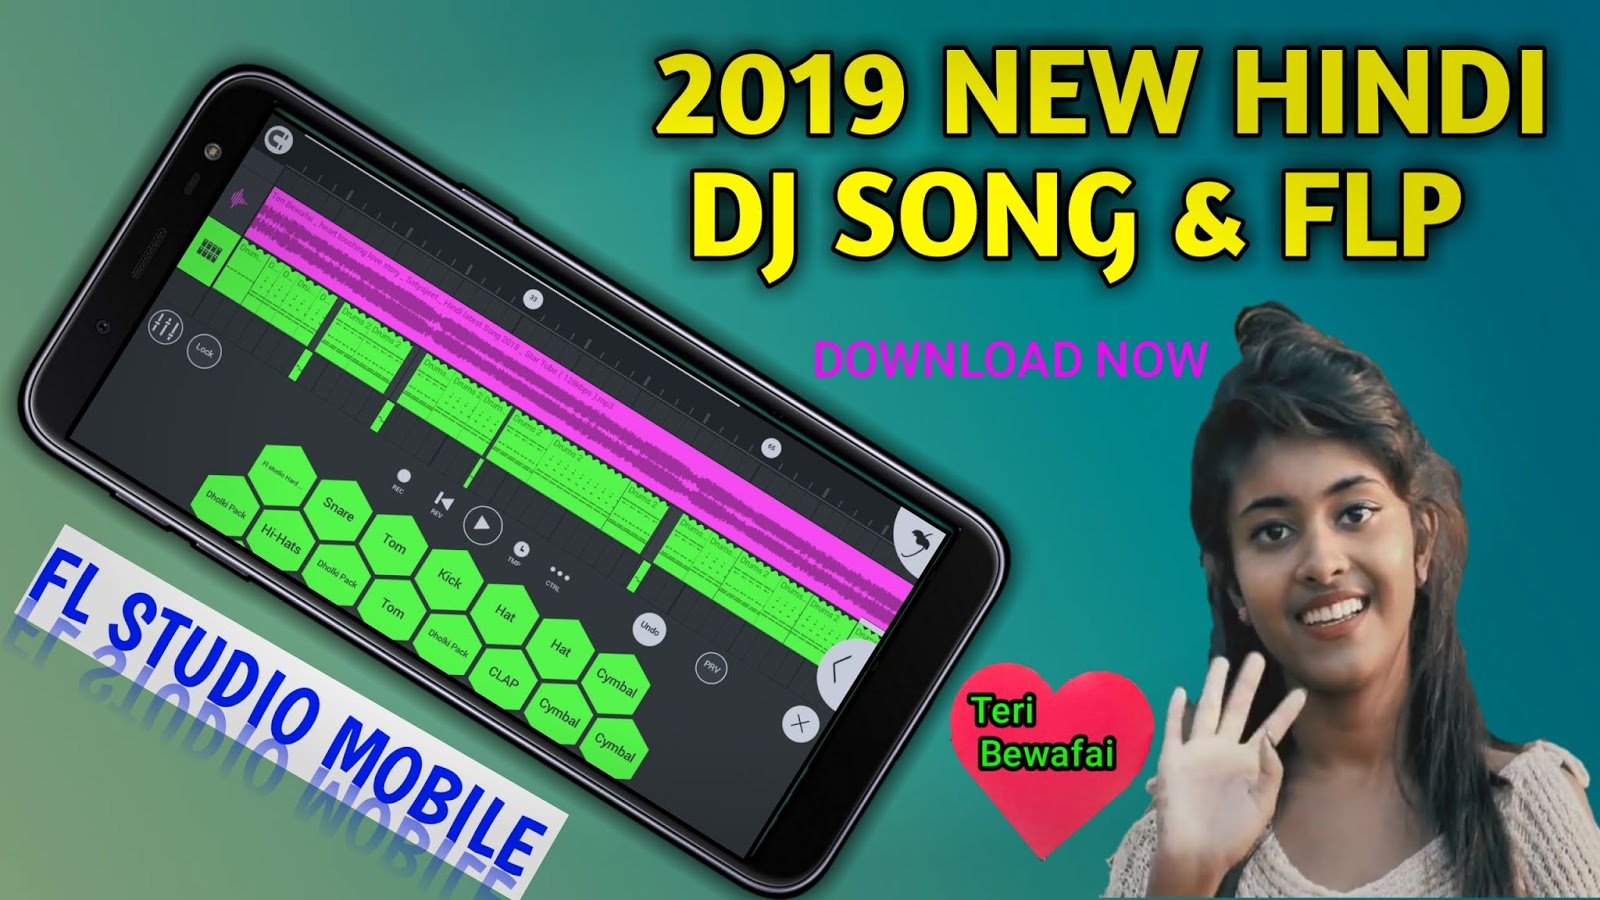 Dj song hindi mp3 free download